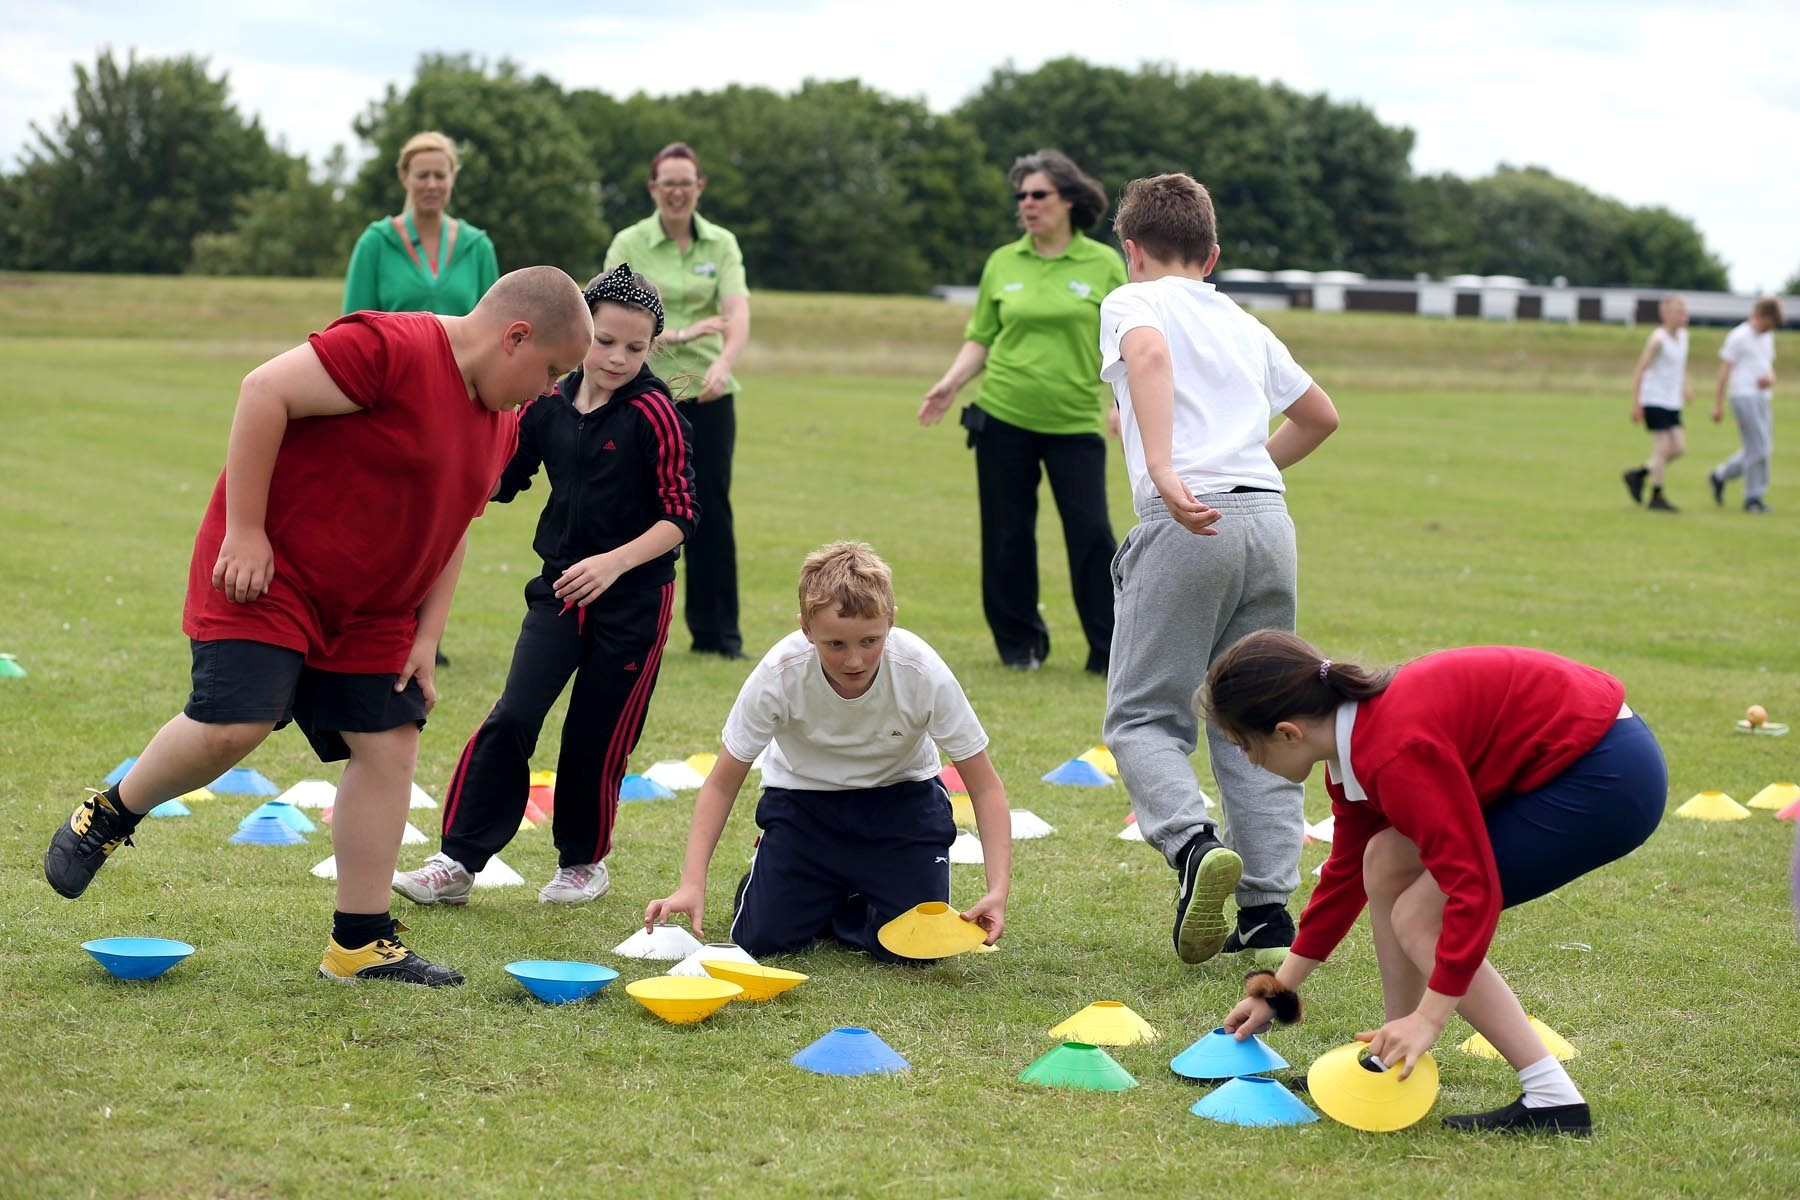 Sport leaders help schoolchildren get active